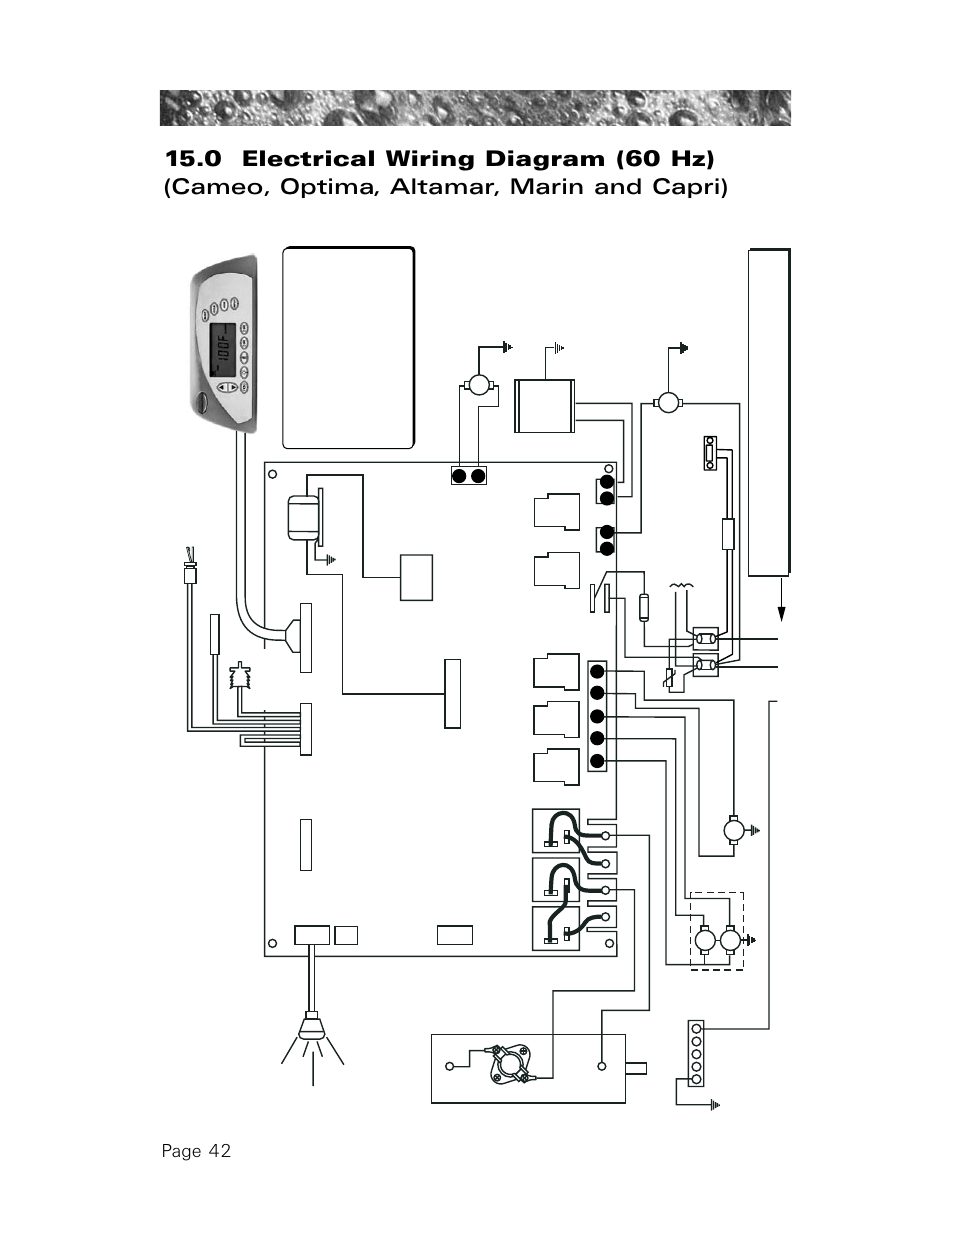 0 electrical    wiring       diagram     60 hz   Page 42   Sundance